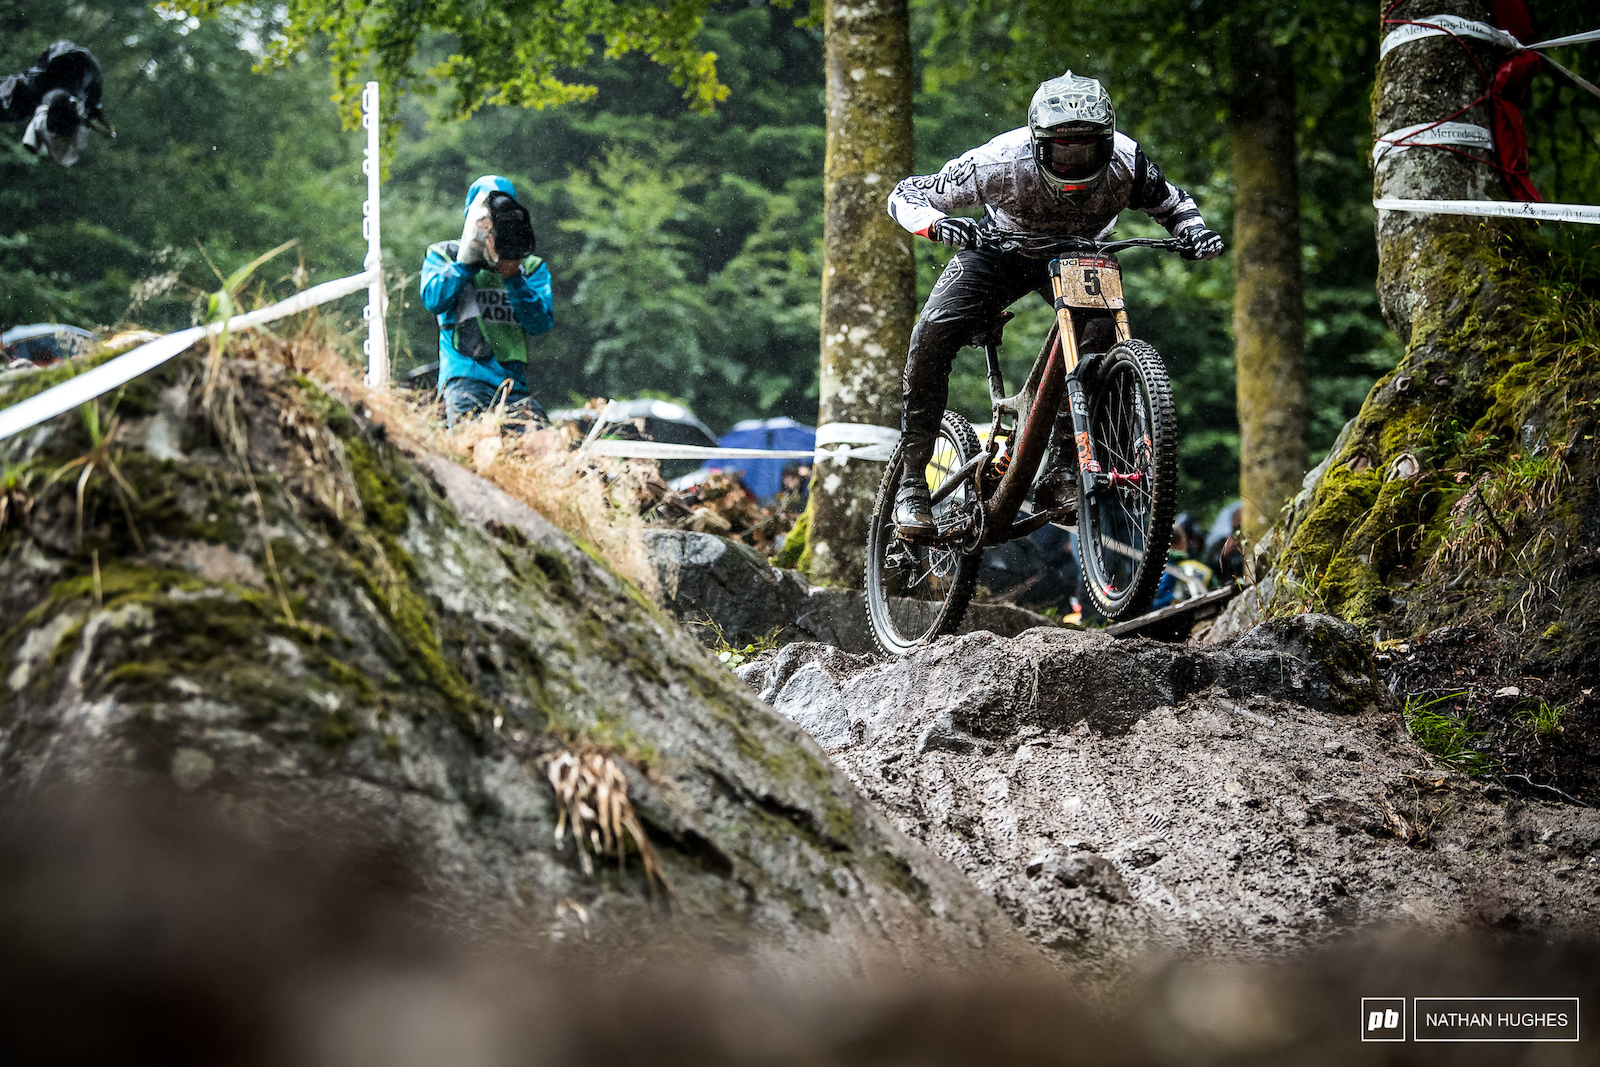 Luca Shaw holding it down in the savagely messy qualie conditions.